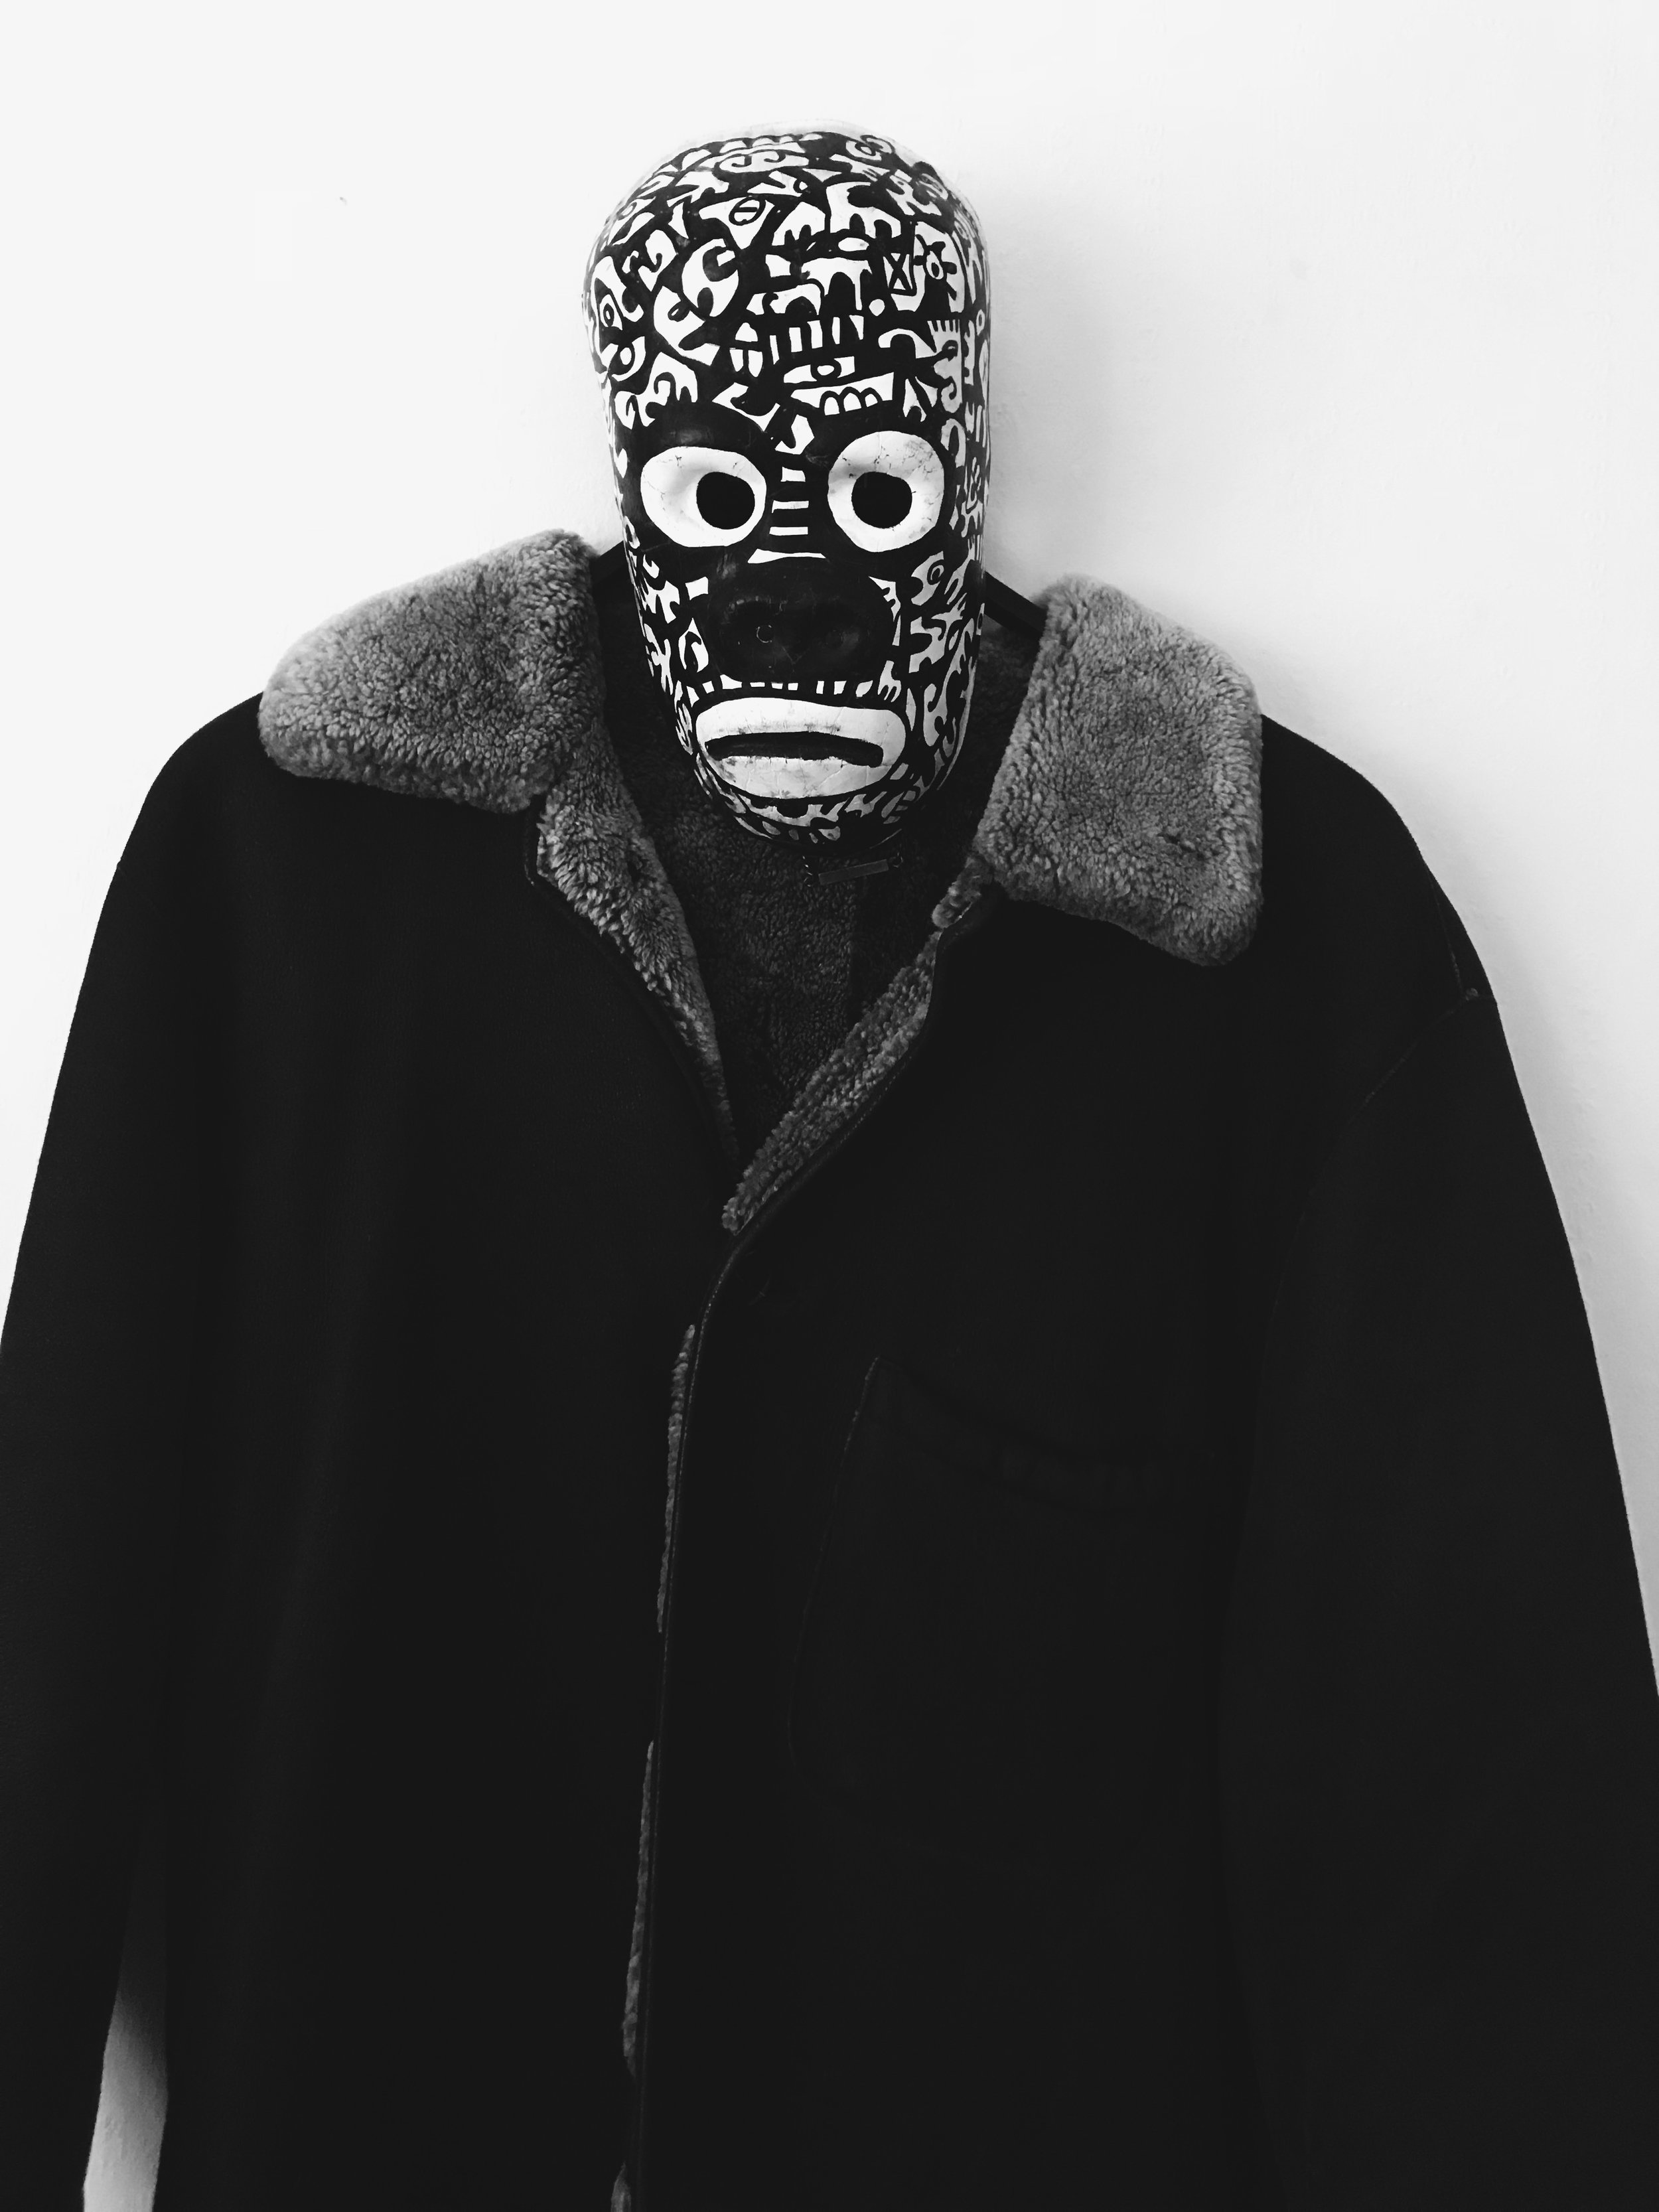 what lies under the surface of this mask, is the insight into my life. Follow my journey.